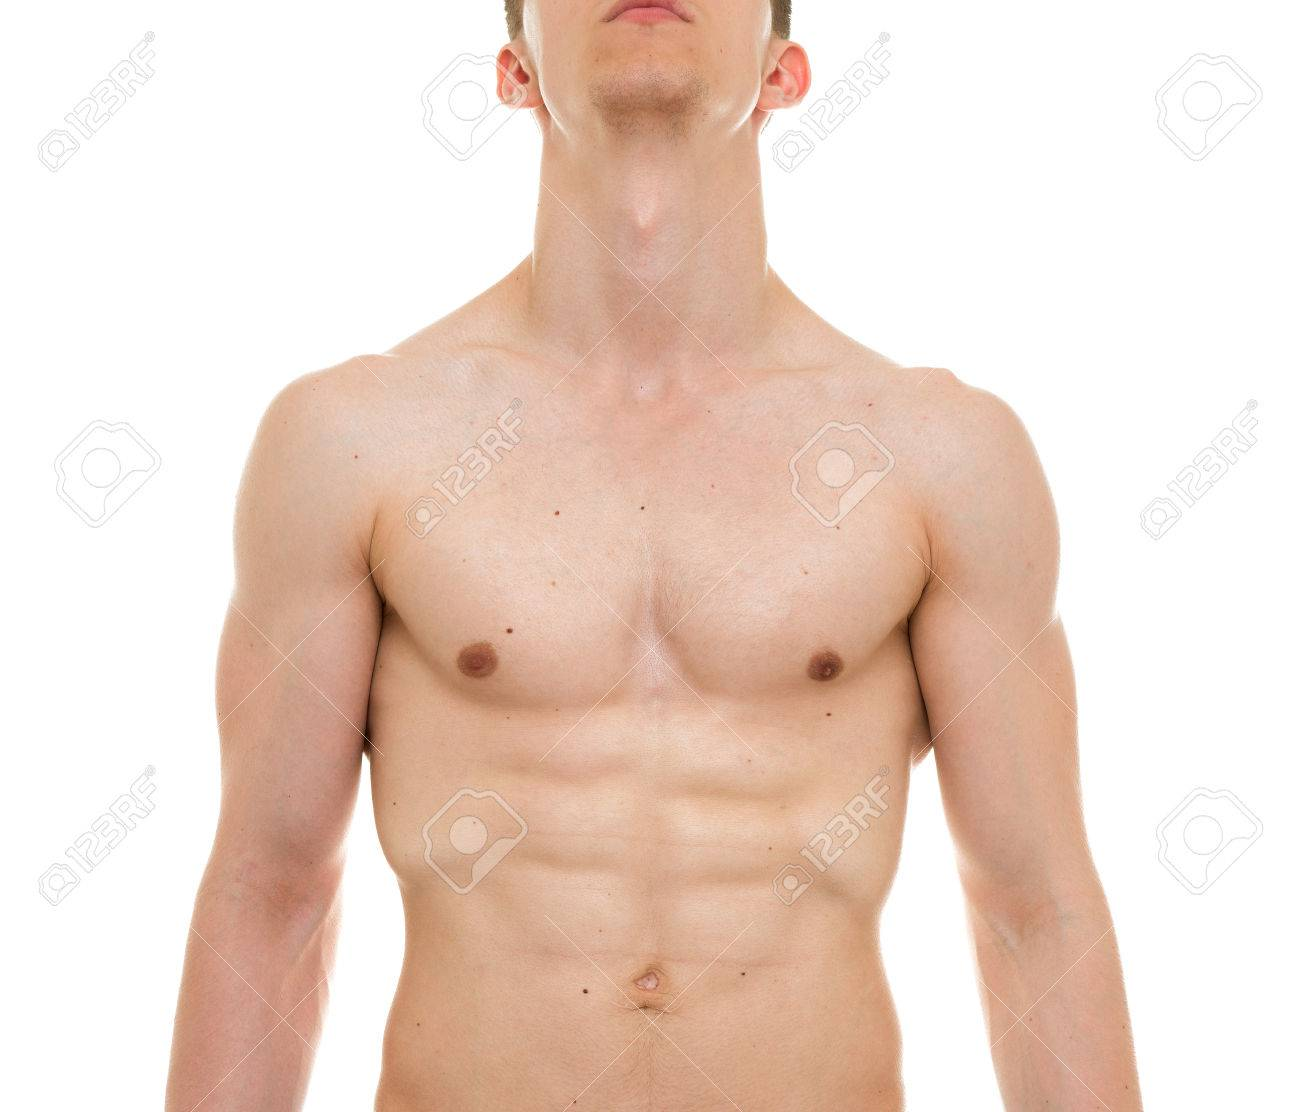 Male Chest Anatomy - Man Muscles Front View Stock Photo, Picture And ...